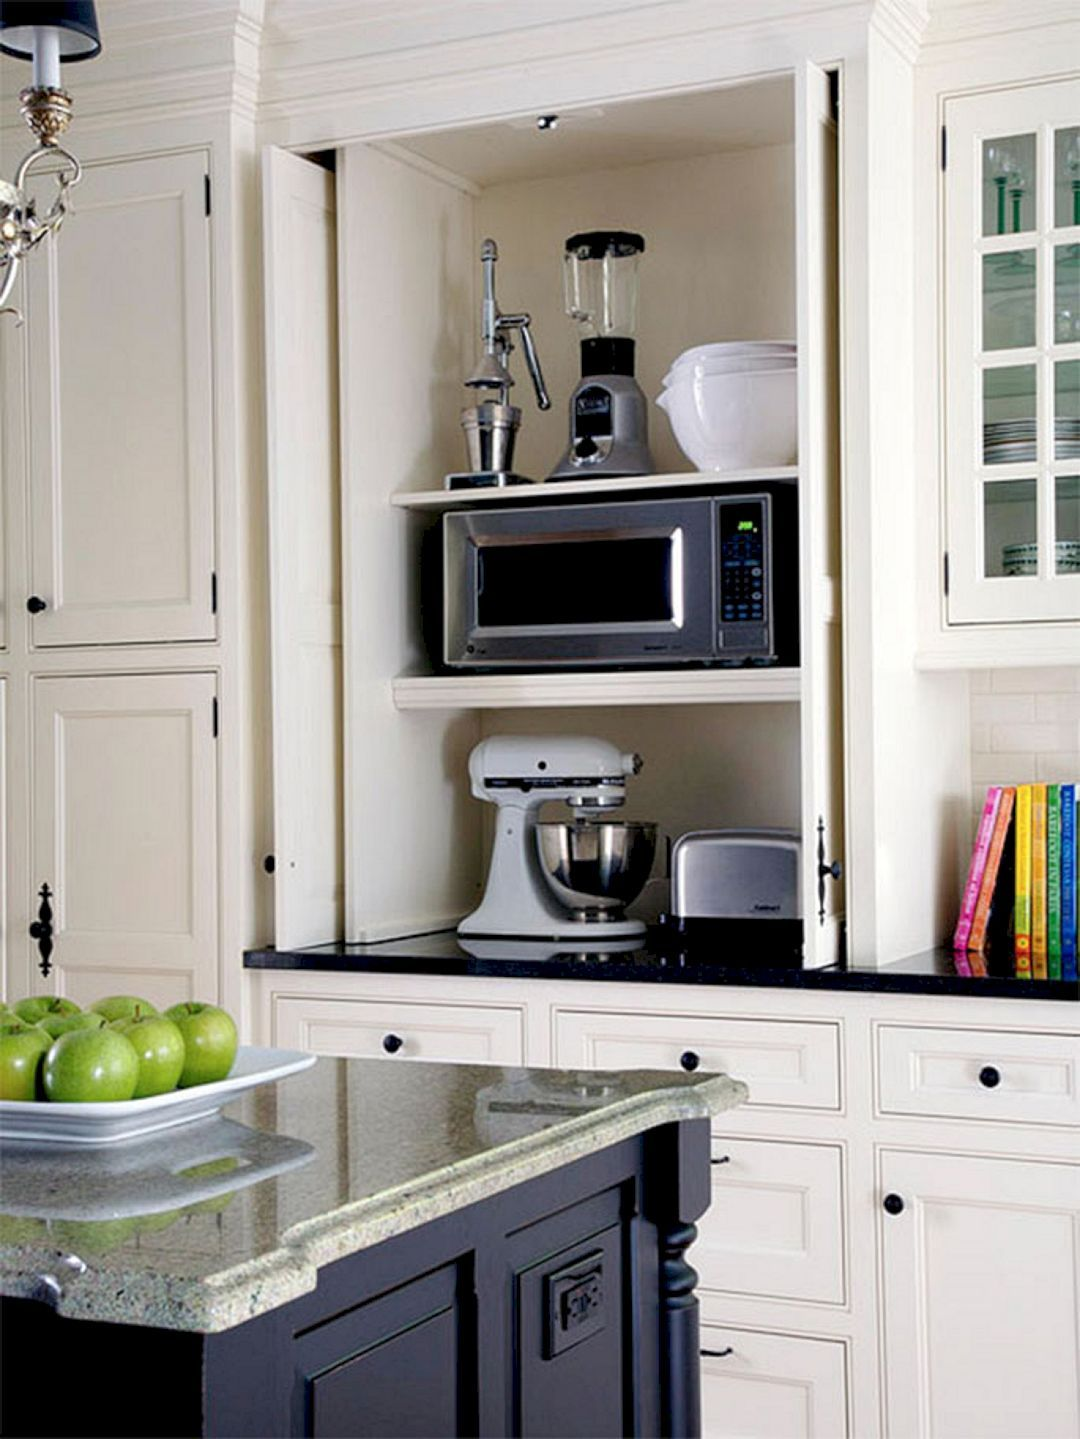 15 Stunning DIY Kitchen Storage Solutions for Small Space